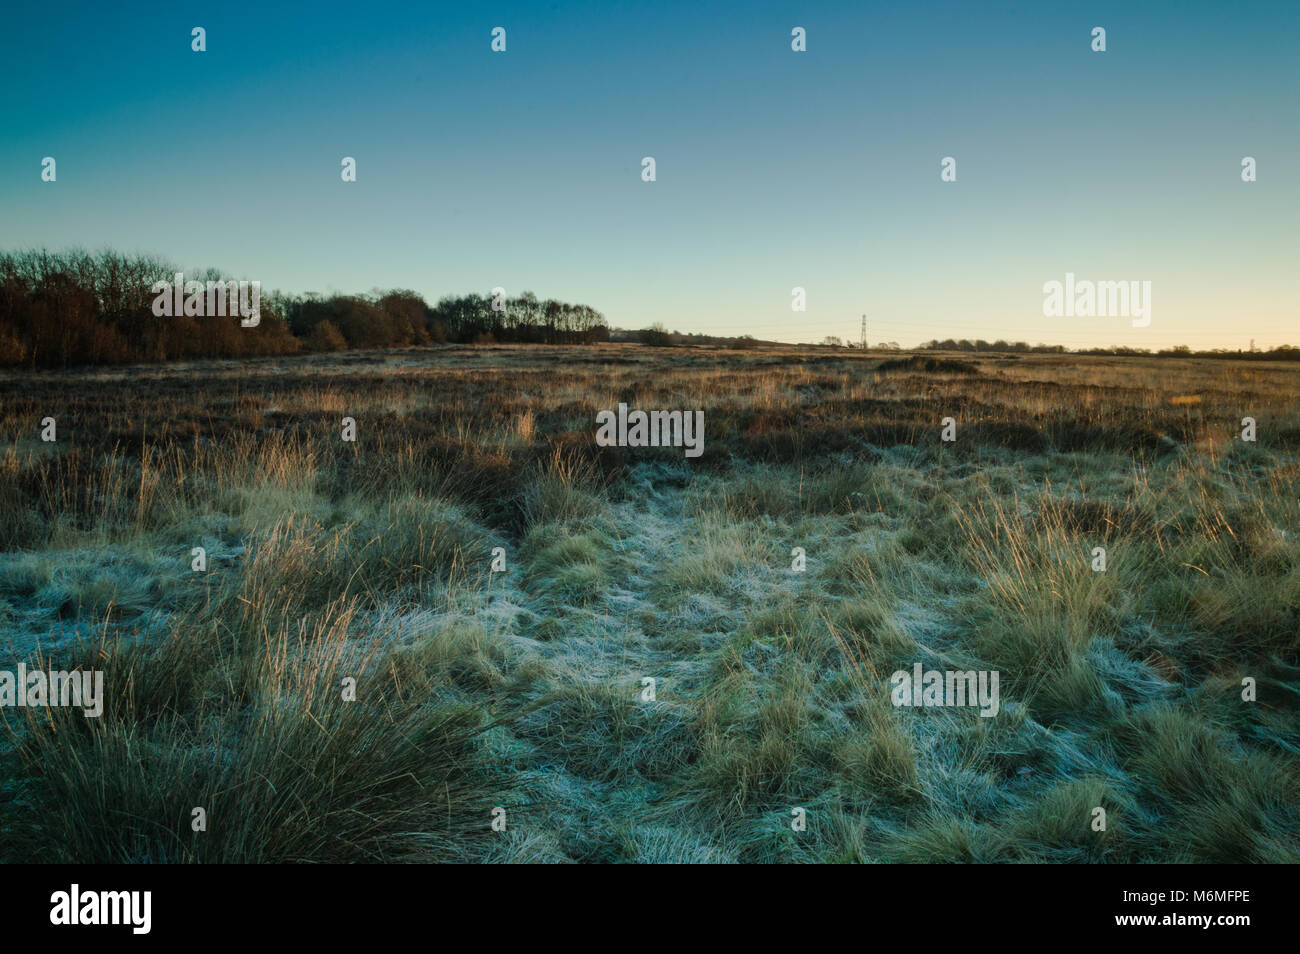 Golden dawn light breaks across the top of the grass on a frozen Wetley Moor in Staffordshire. - Stock Image